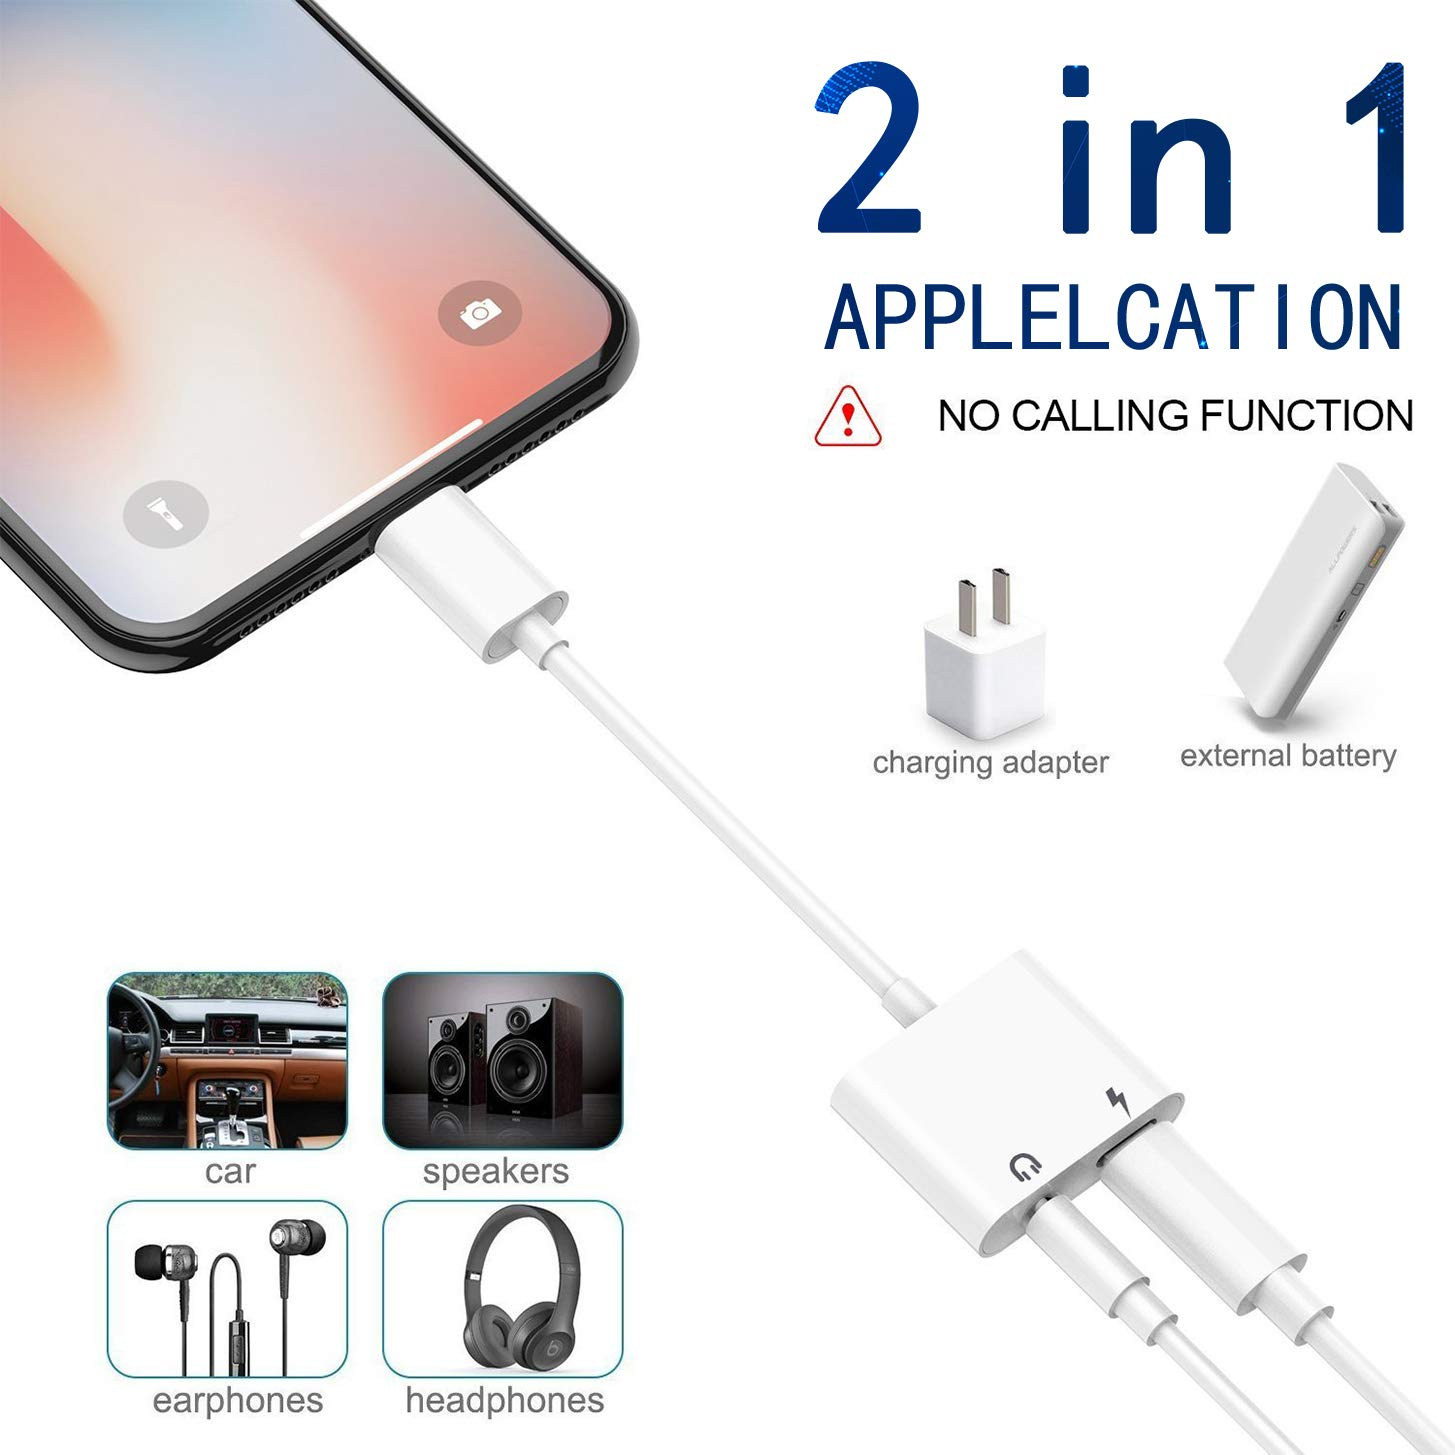 Headphone Adapter for iPhone Jack AUX Audio 3.5 mm Jack Adapter for iPhone Adapter for iPhone 7//7Plus//8//8Plus//X//XR//XS//XS MAX Dongle Accessory Compatible All iOS Systems /& Music Control /& Calling